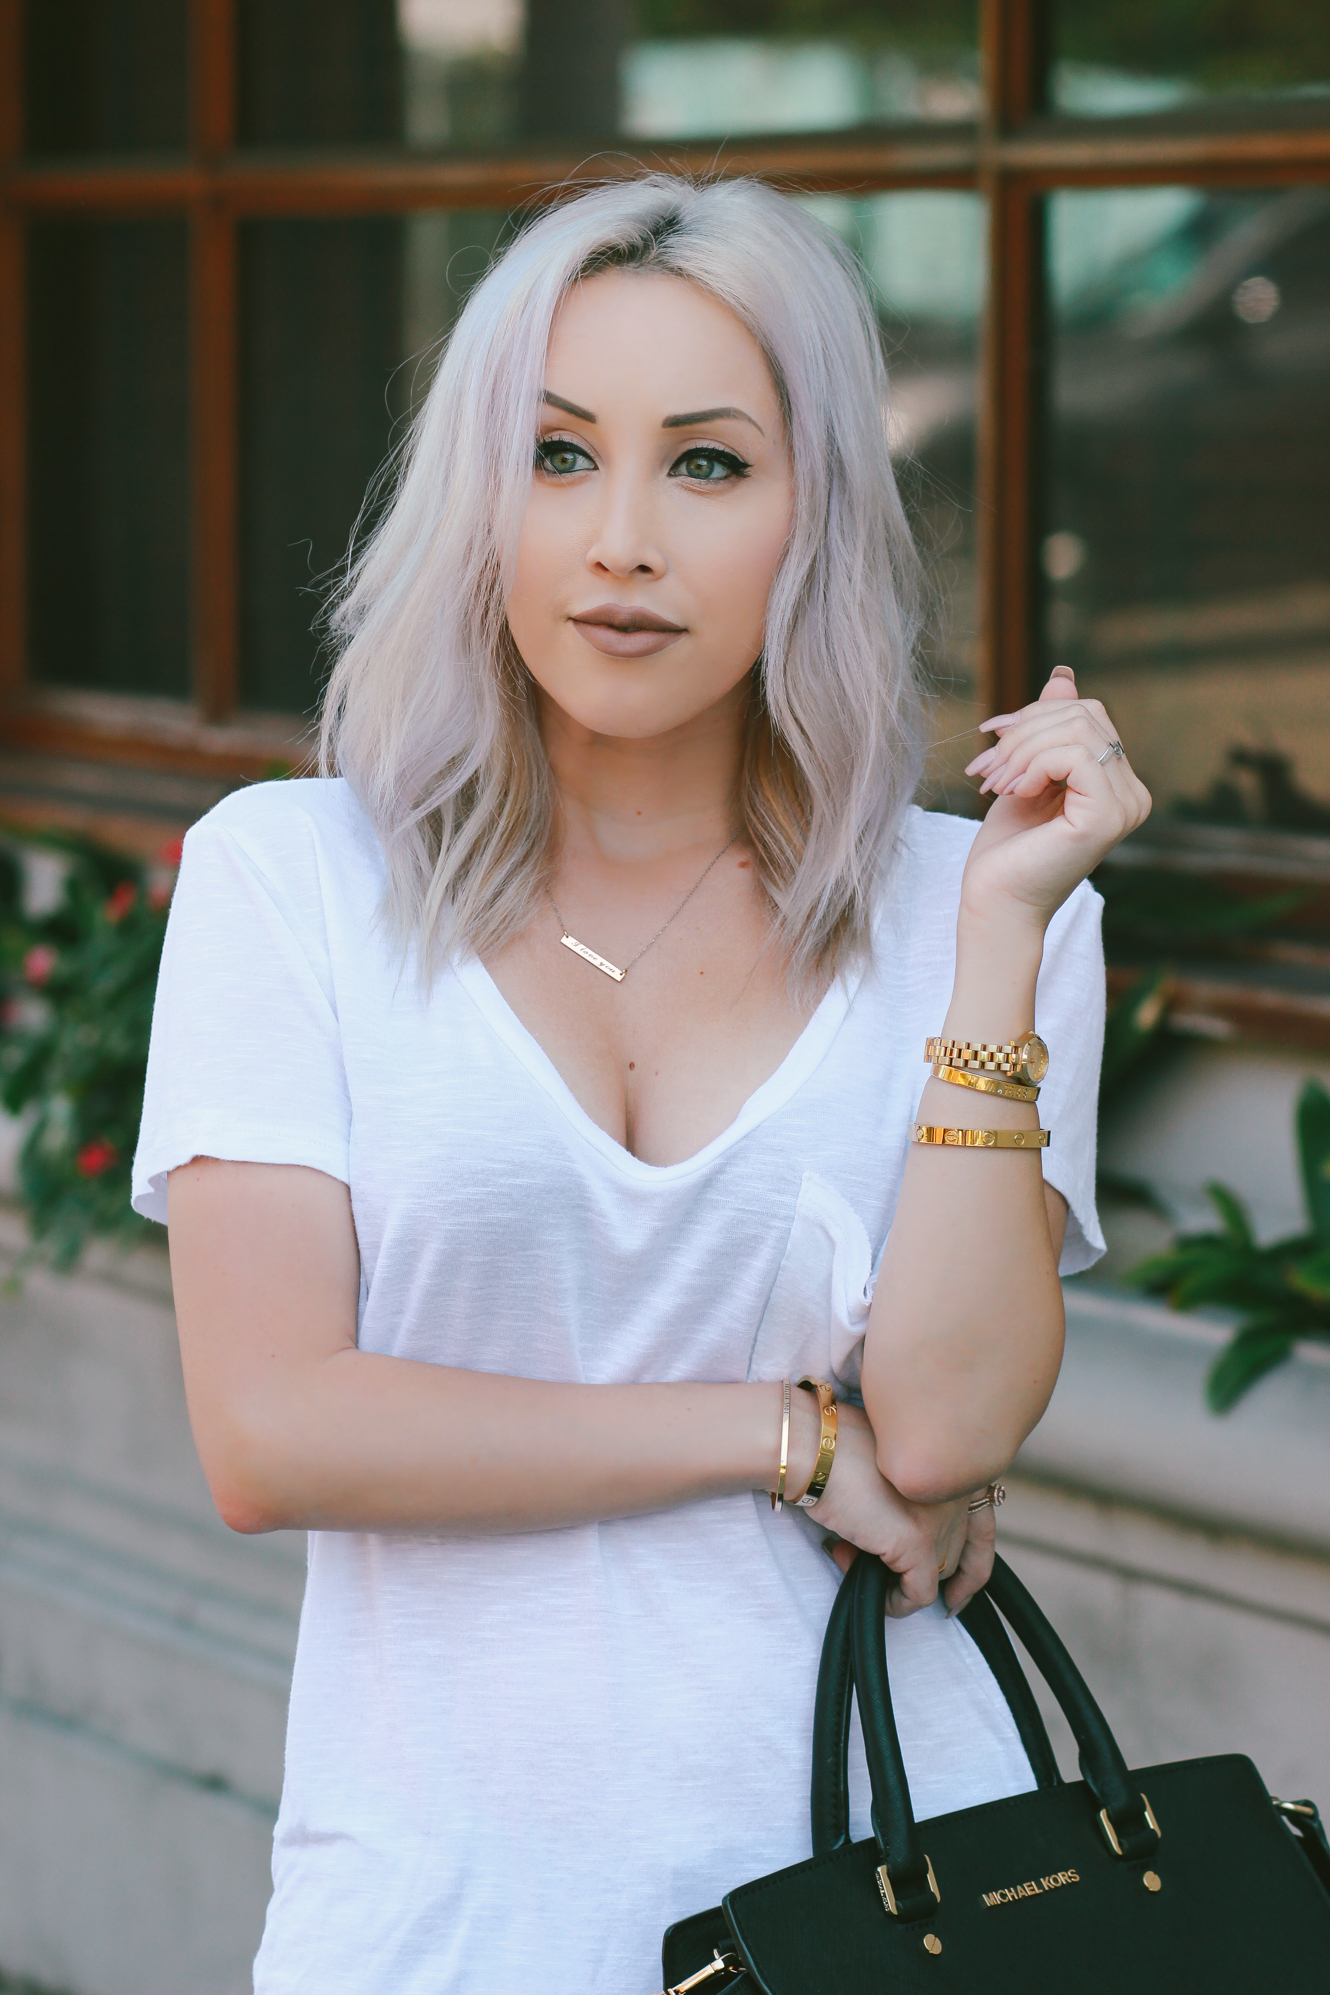 Blondie in the City | The BEST Simple White Tee for only $8! | Casual, Everyday Wear